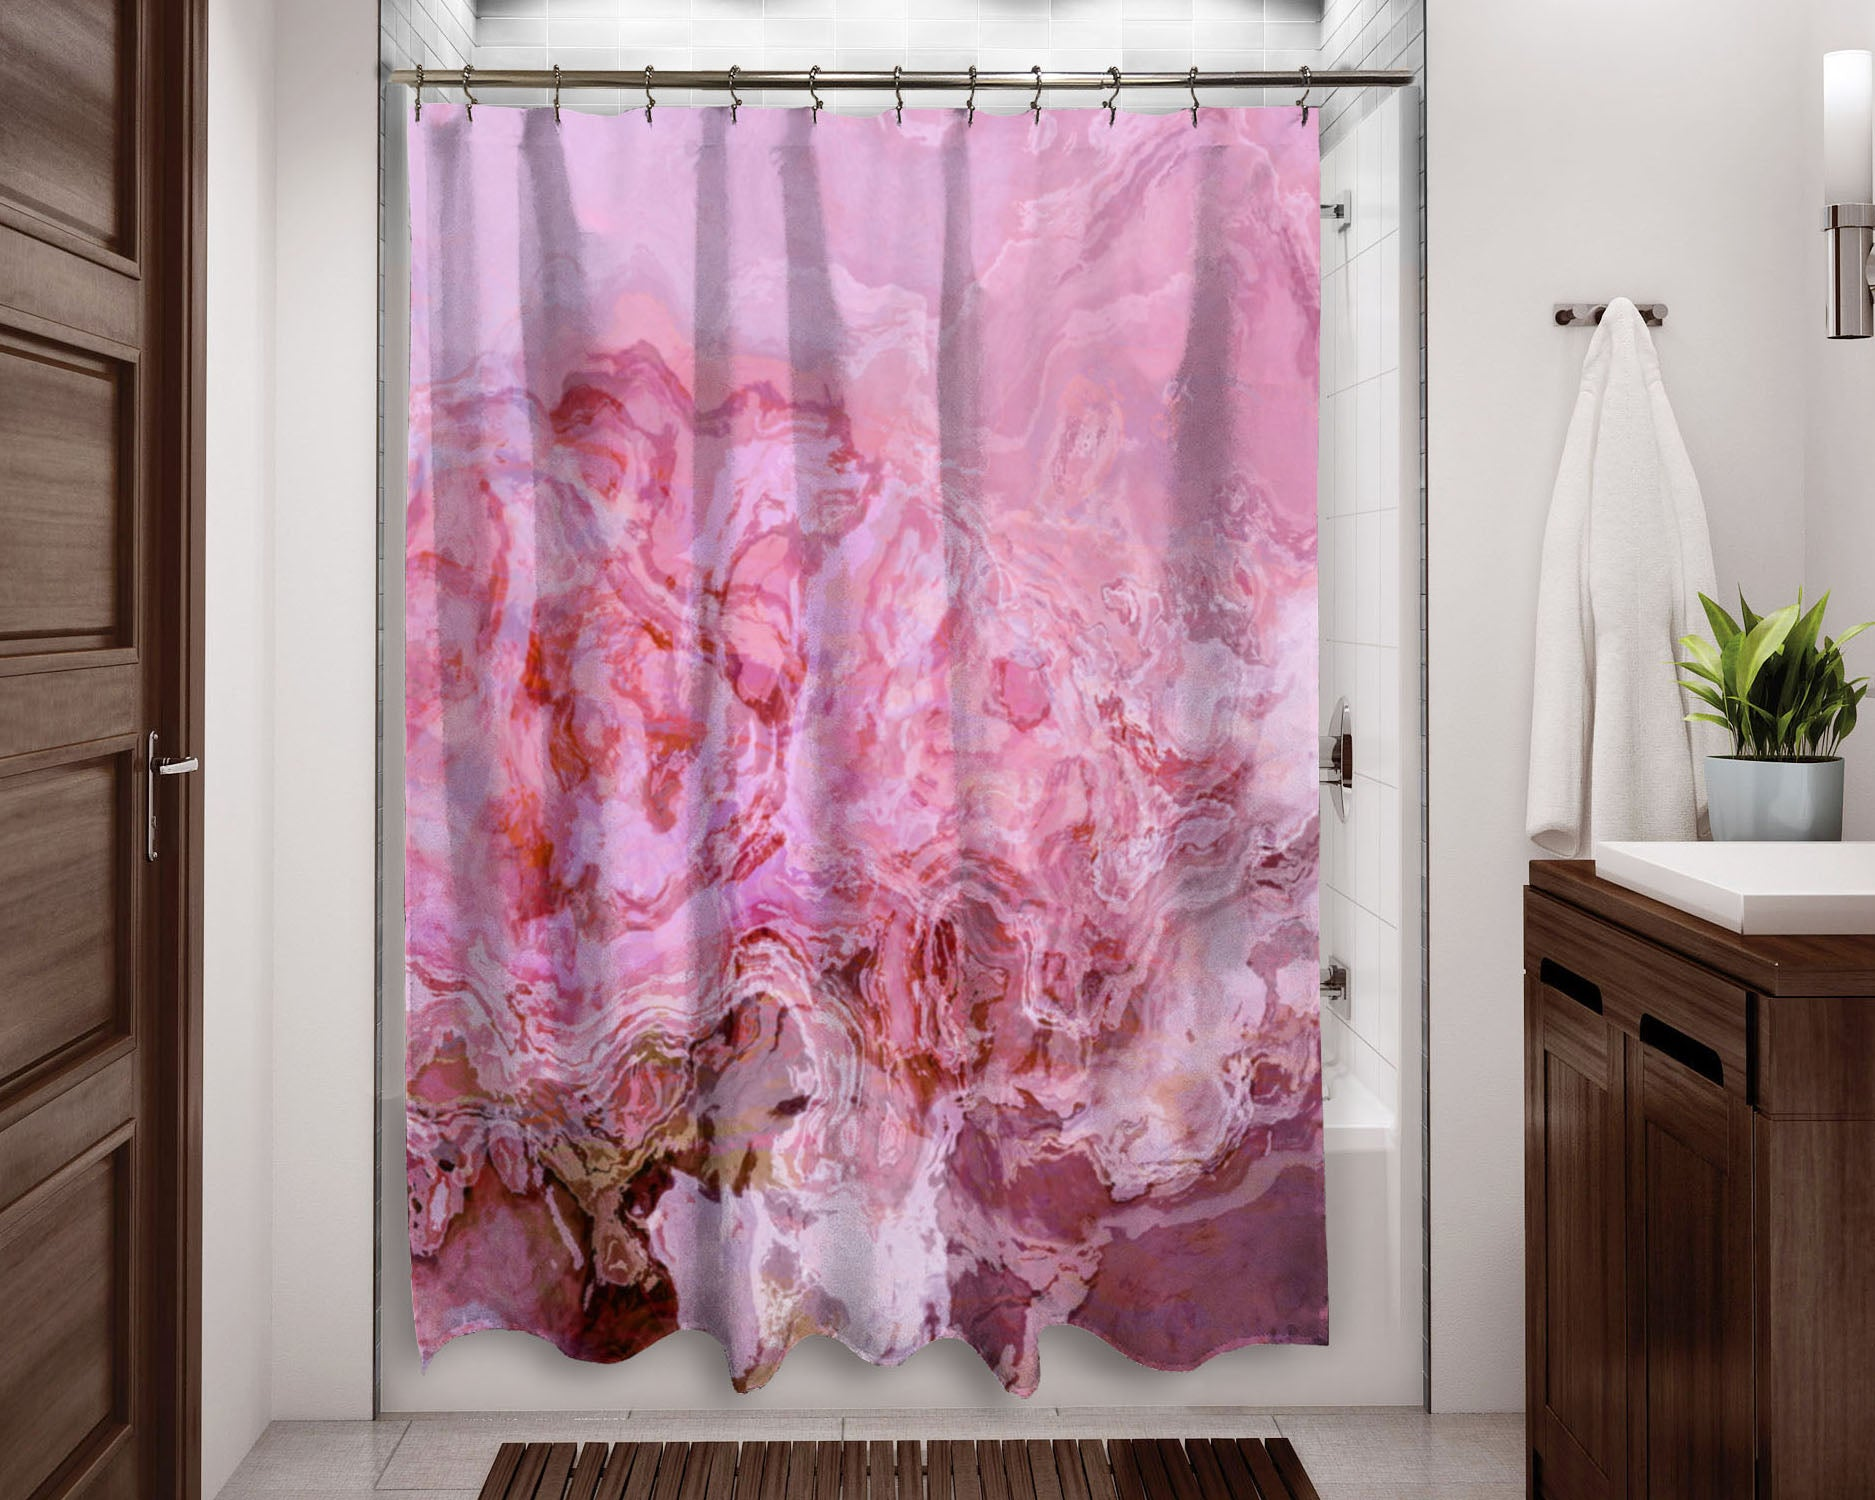 Abstract Art Shower Curtain Pink Crimson Lavender Mauve White Home